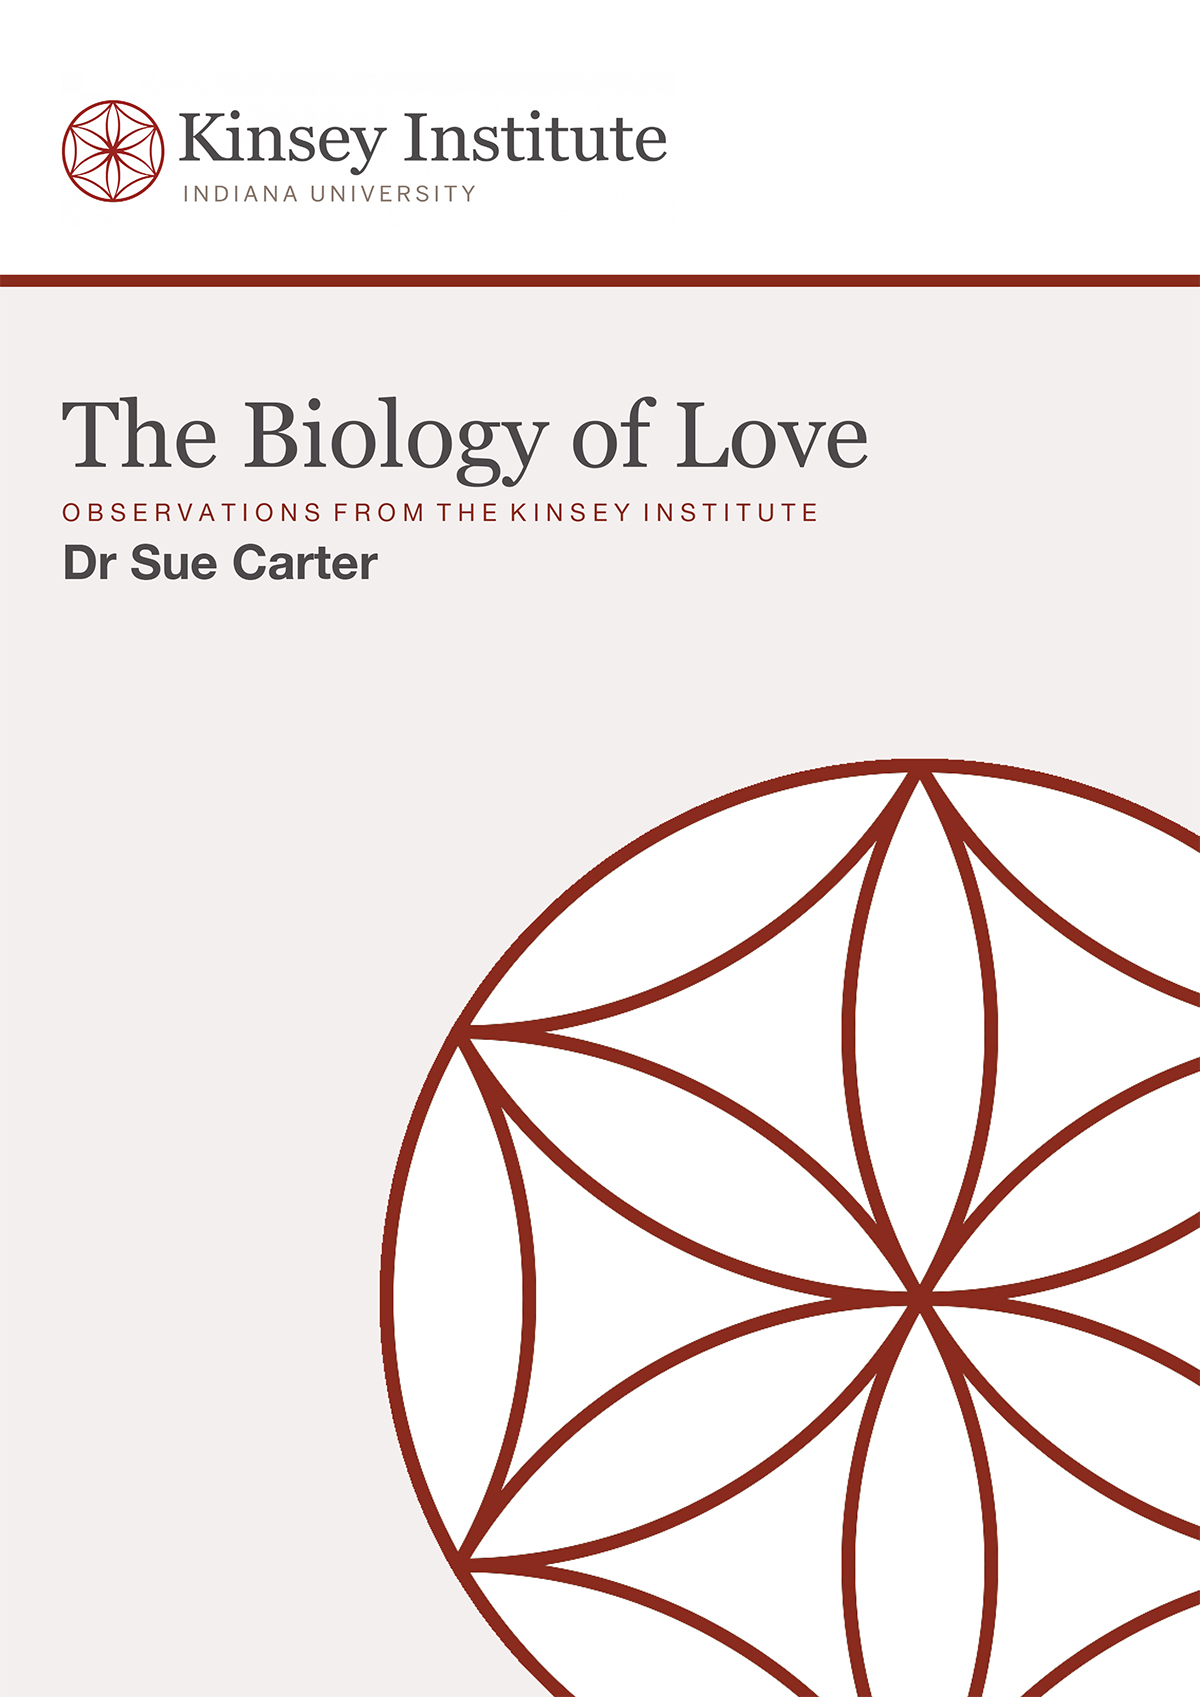 The Biology of Love, kinsey institute